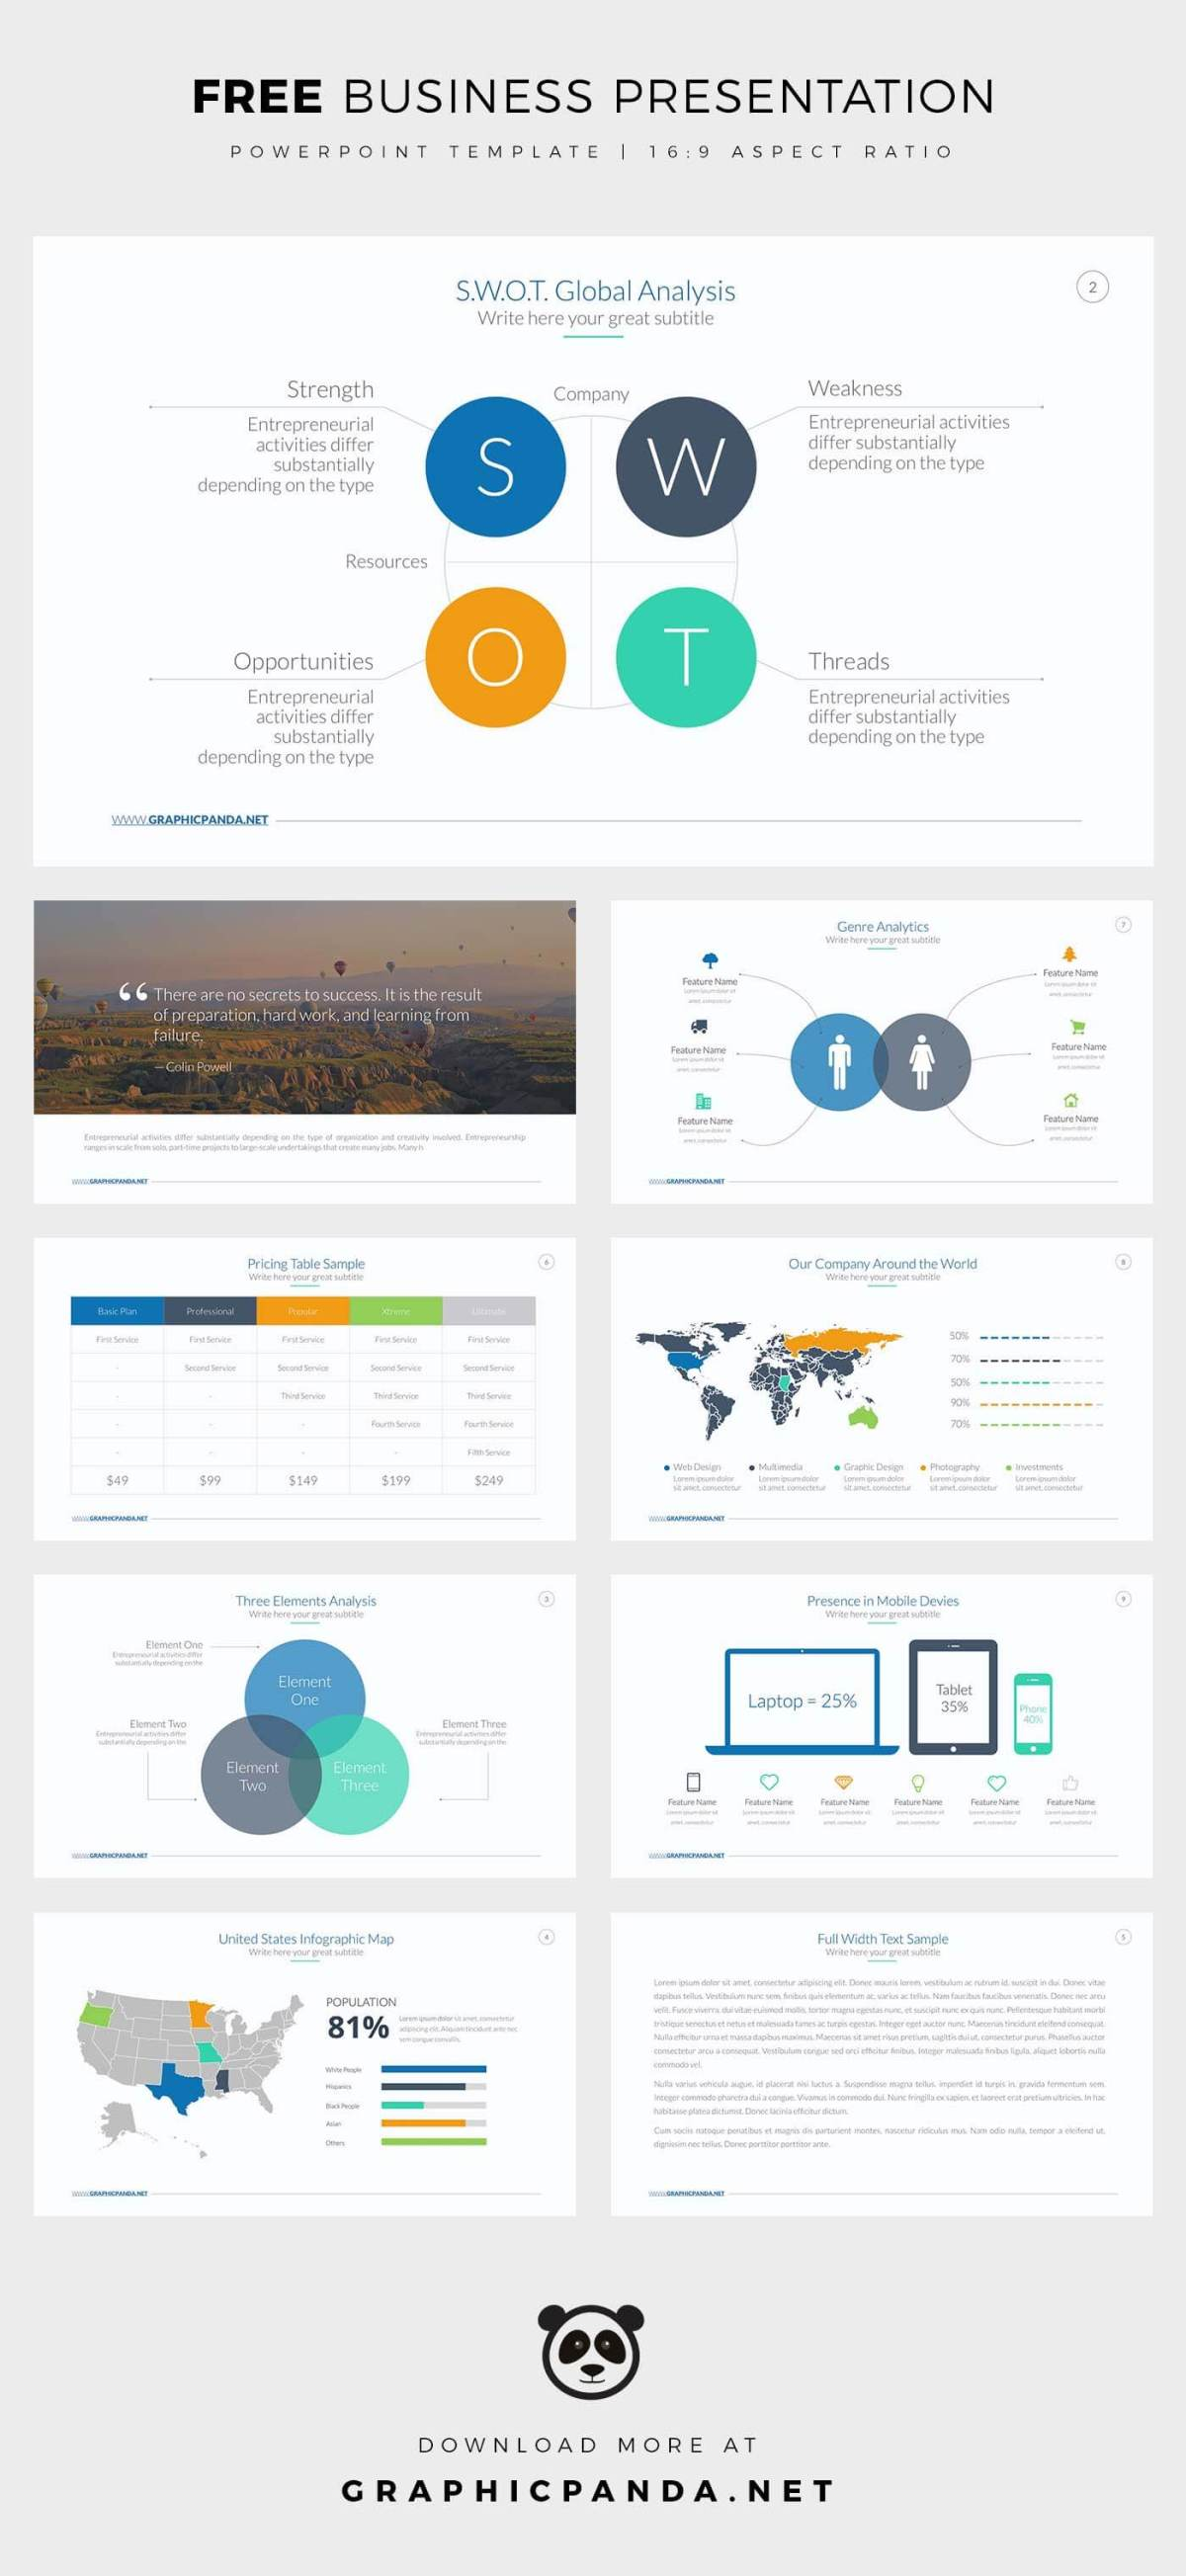 Free business powerpoint templates professional and easy to edit free business powerpoint template accmission Gallery